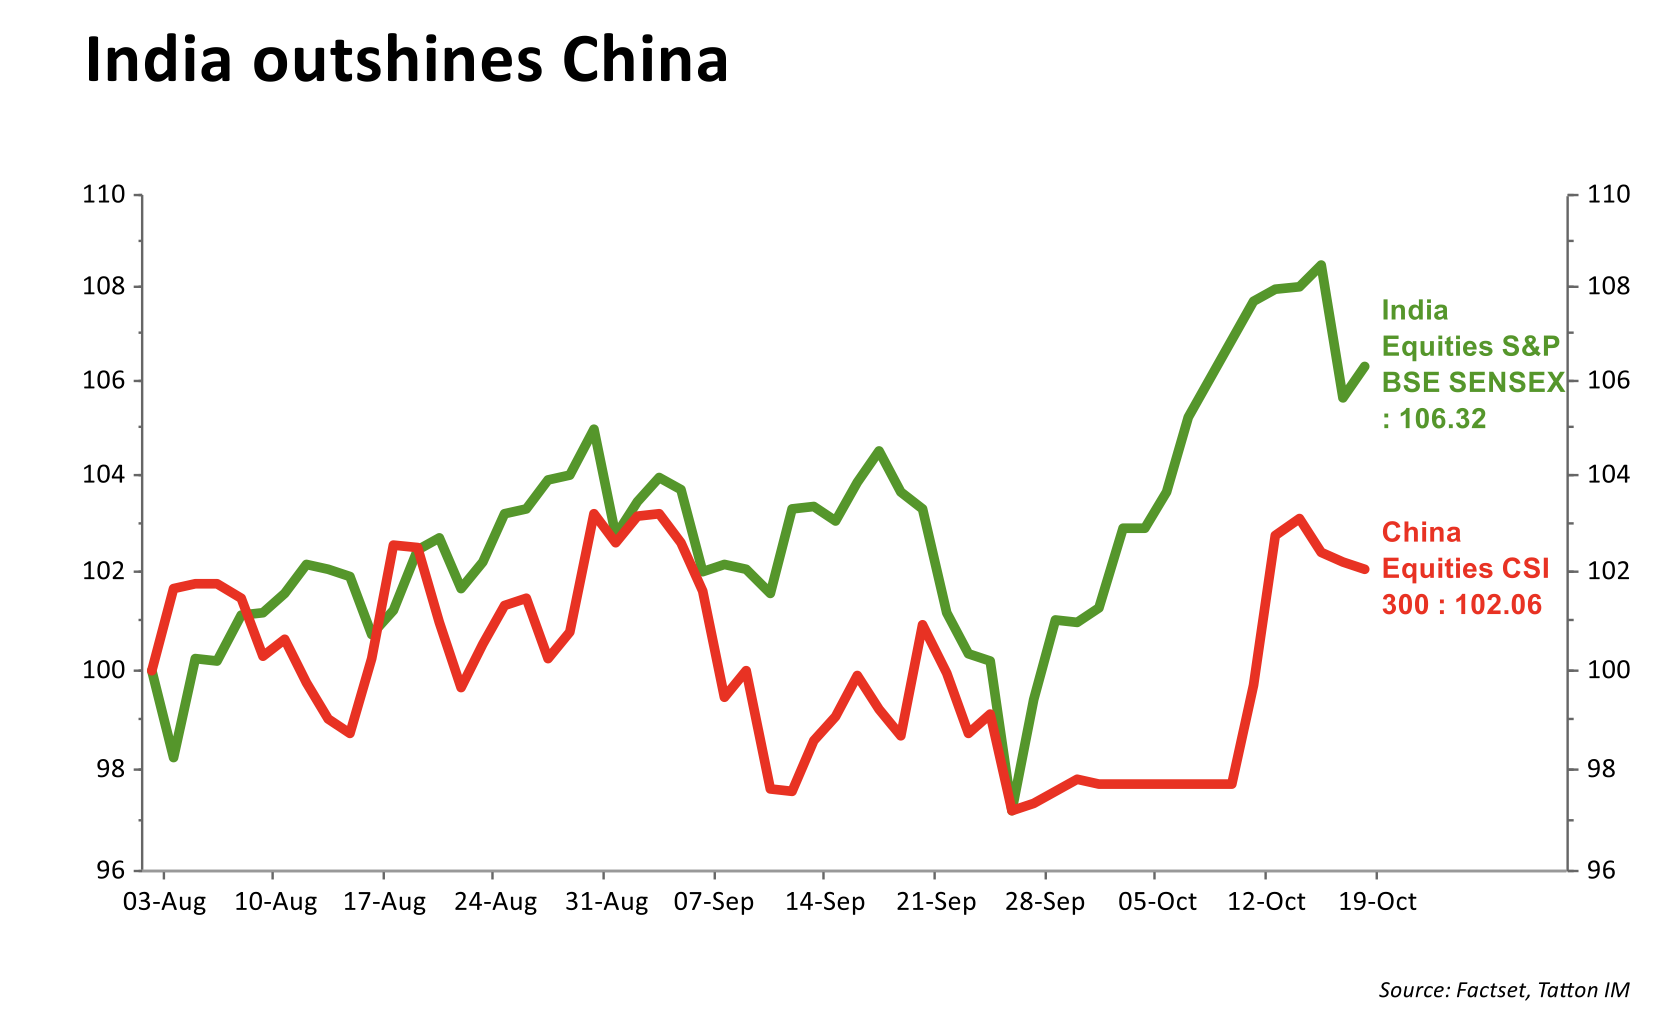 India outshines China